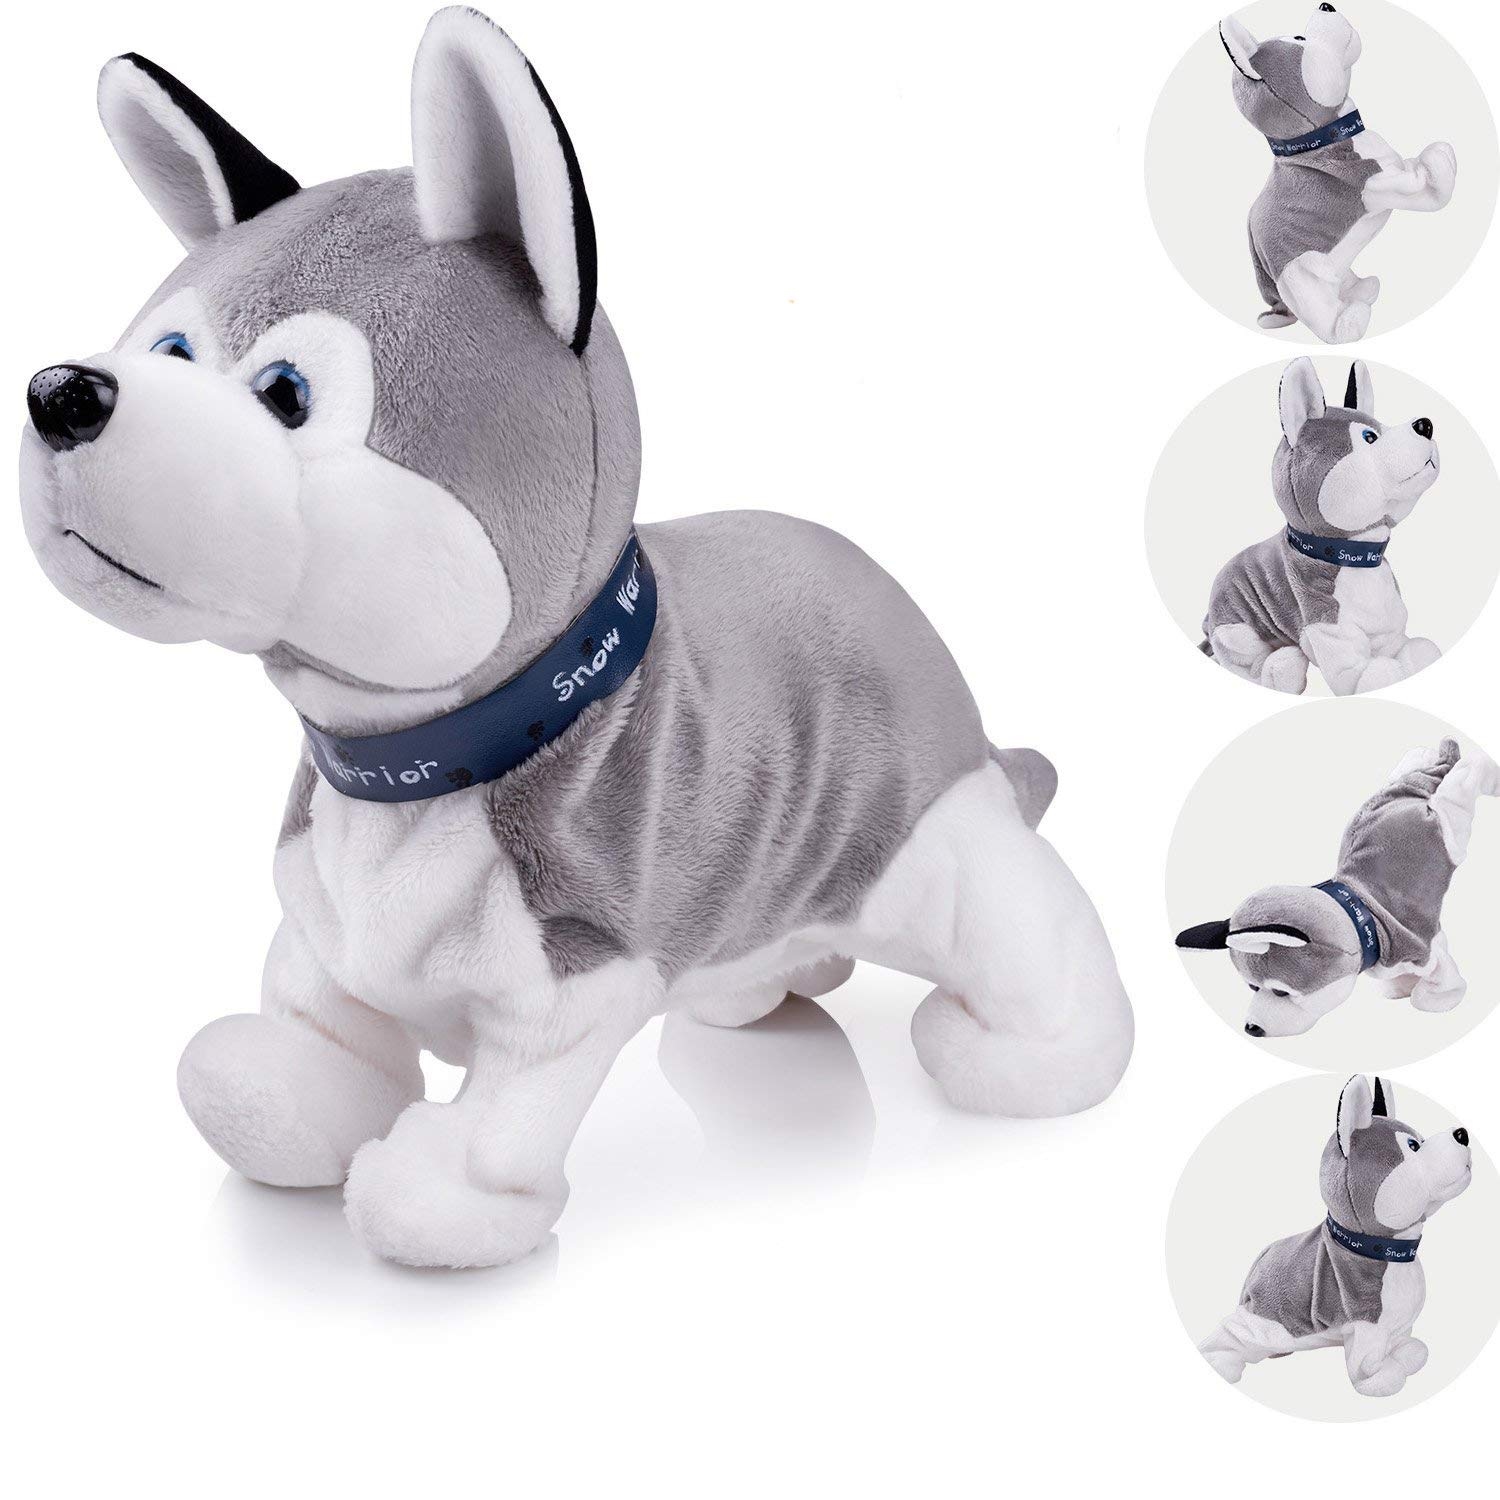 Interactive Puppy Plush Animated Pet Electronic Dog Cute Robot Dog Baby Toys Touch Control Plush Husky Stuffed Animal Dog Toy Toddler kids Girl Toys Tumbling, Clapping hands, Bowing Length 12''